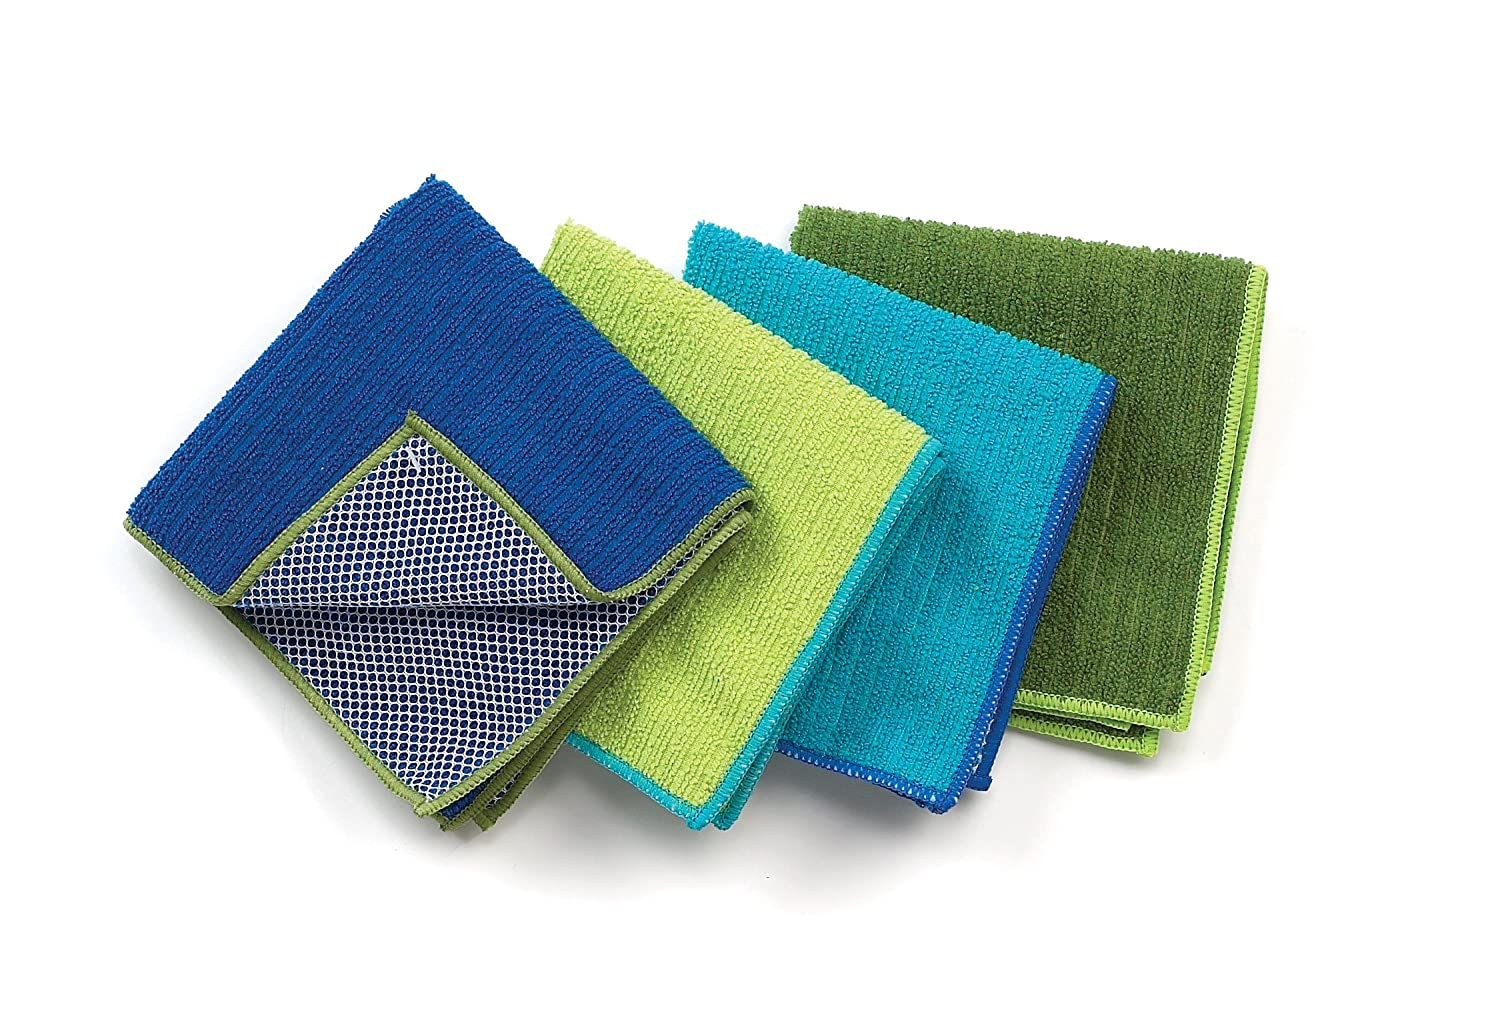 Ritz 60025 Microfiber 12 by 12-Inch Dish Cloth with Poly Scour Side, 4-Pack, Assorted Blue/Green